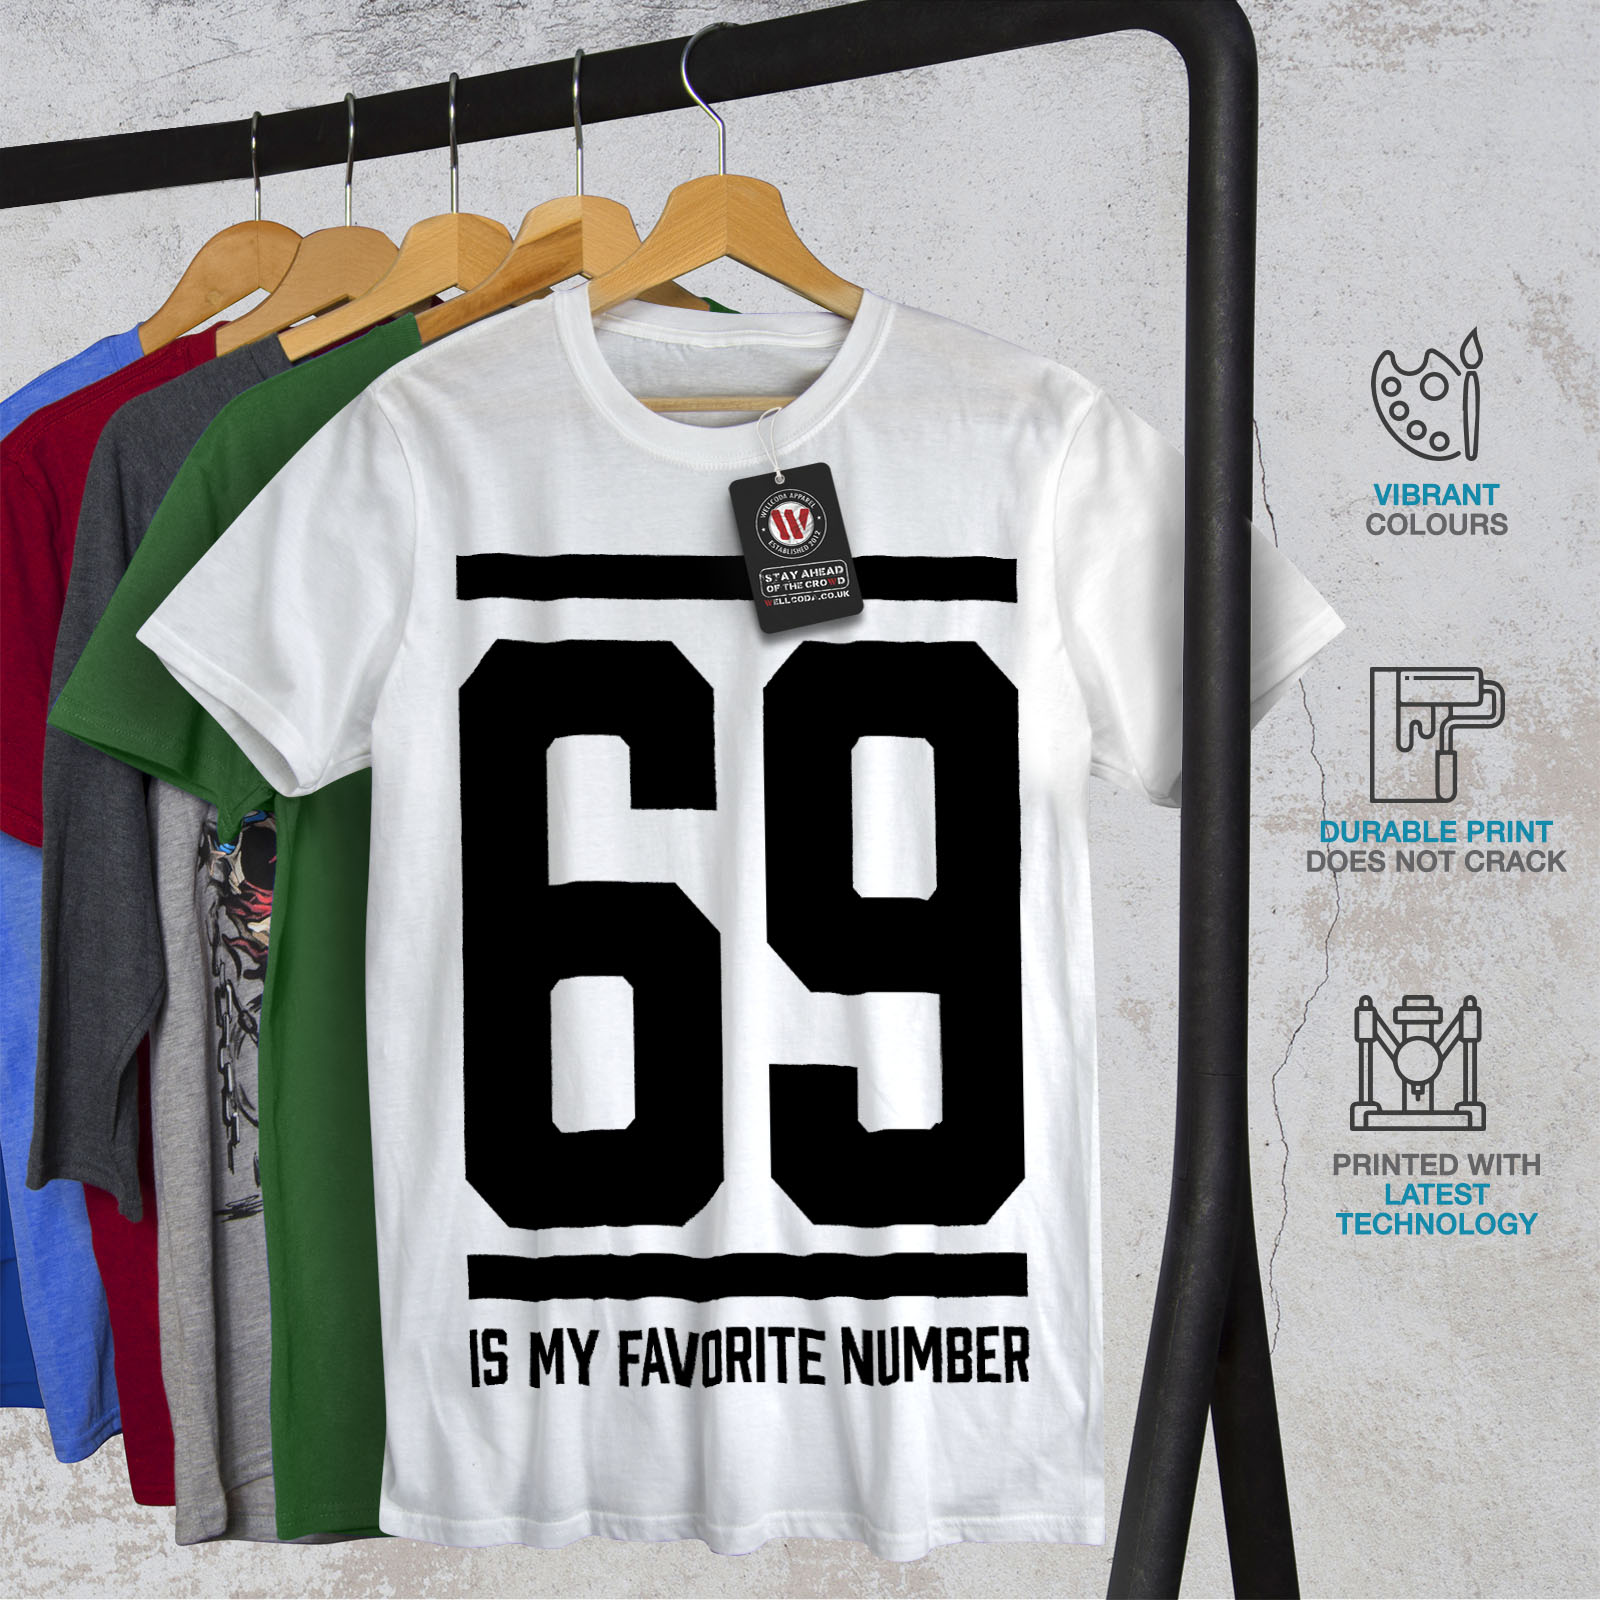 Wellcoda-69-Favorite-Number-Mens-T-shirt-Sports-Graphic-Design-Printed-Tee thumbnail 12